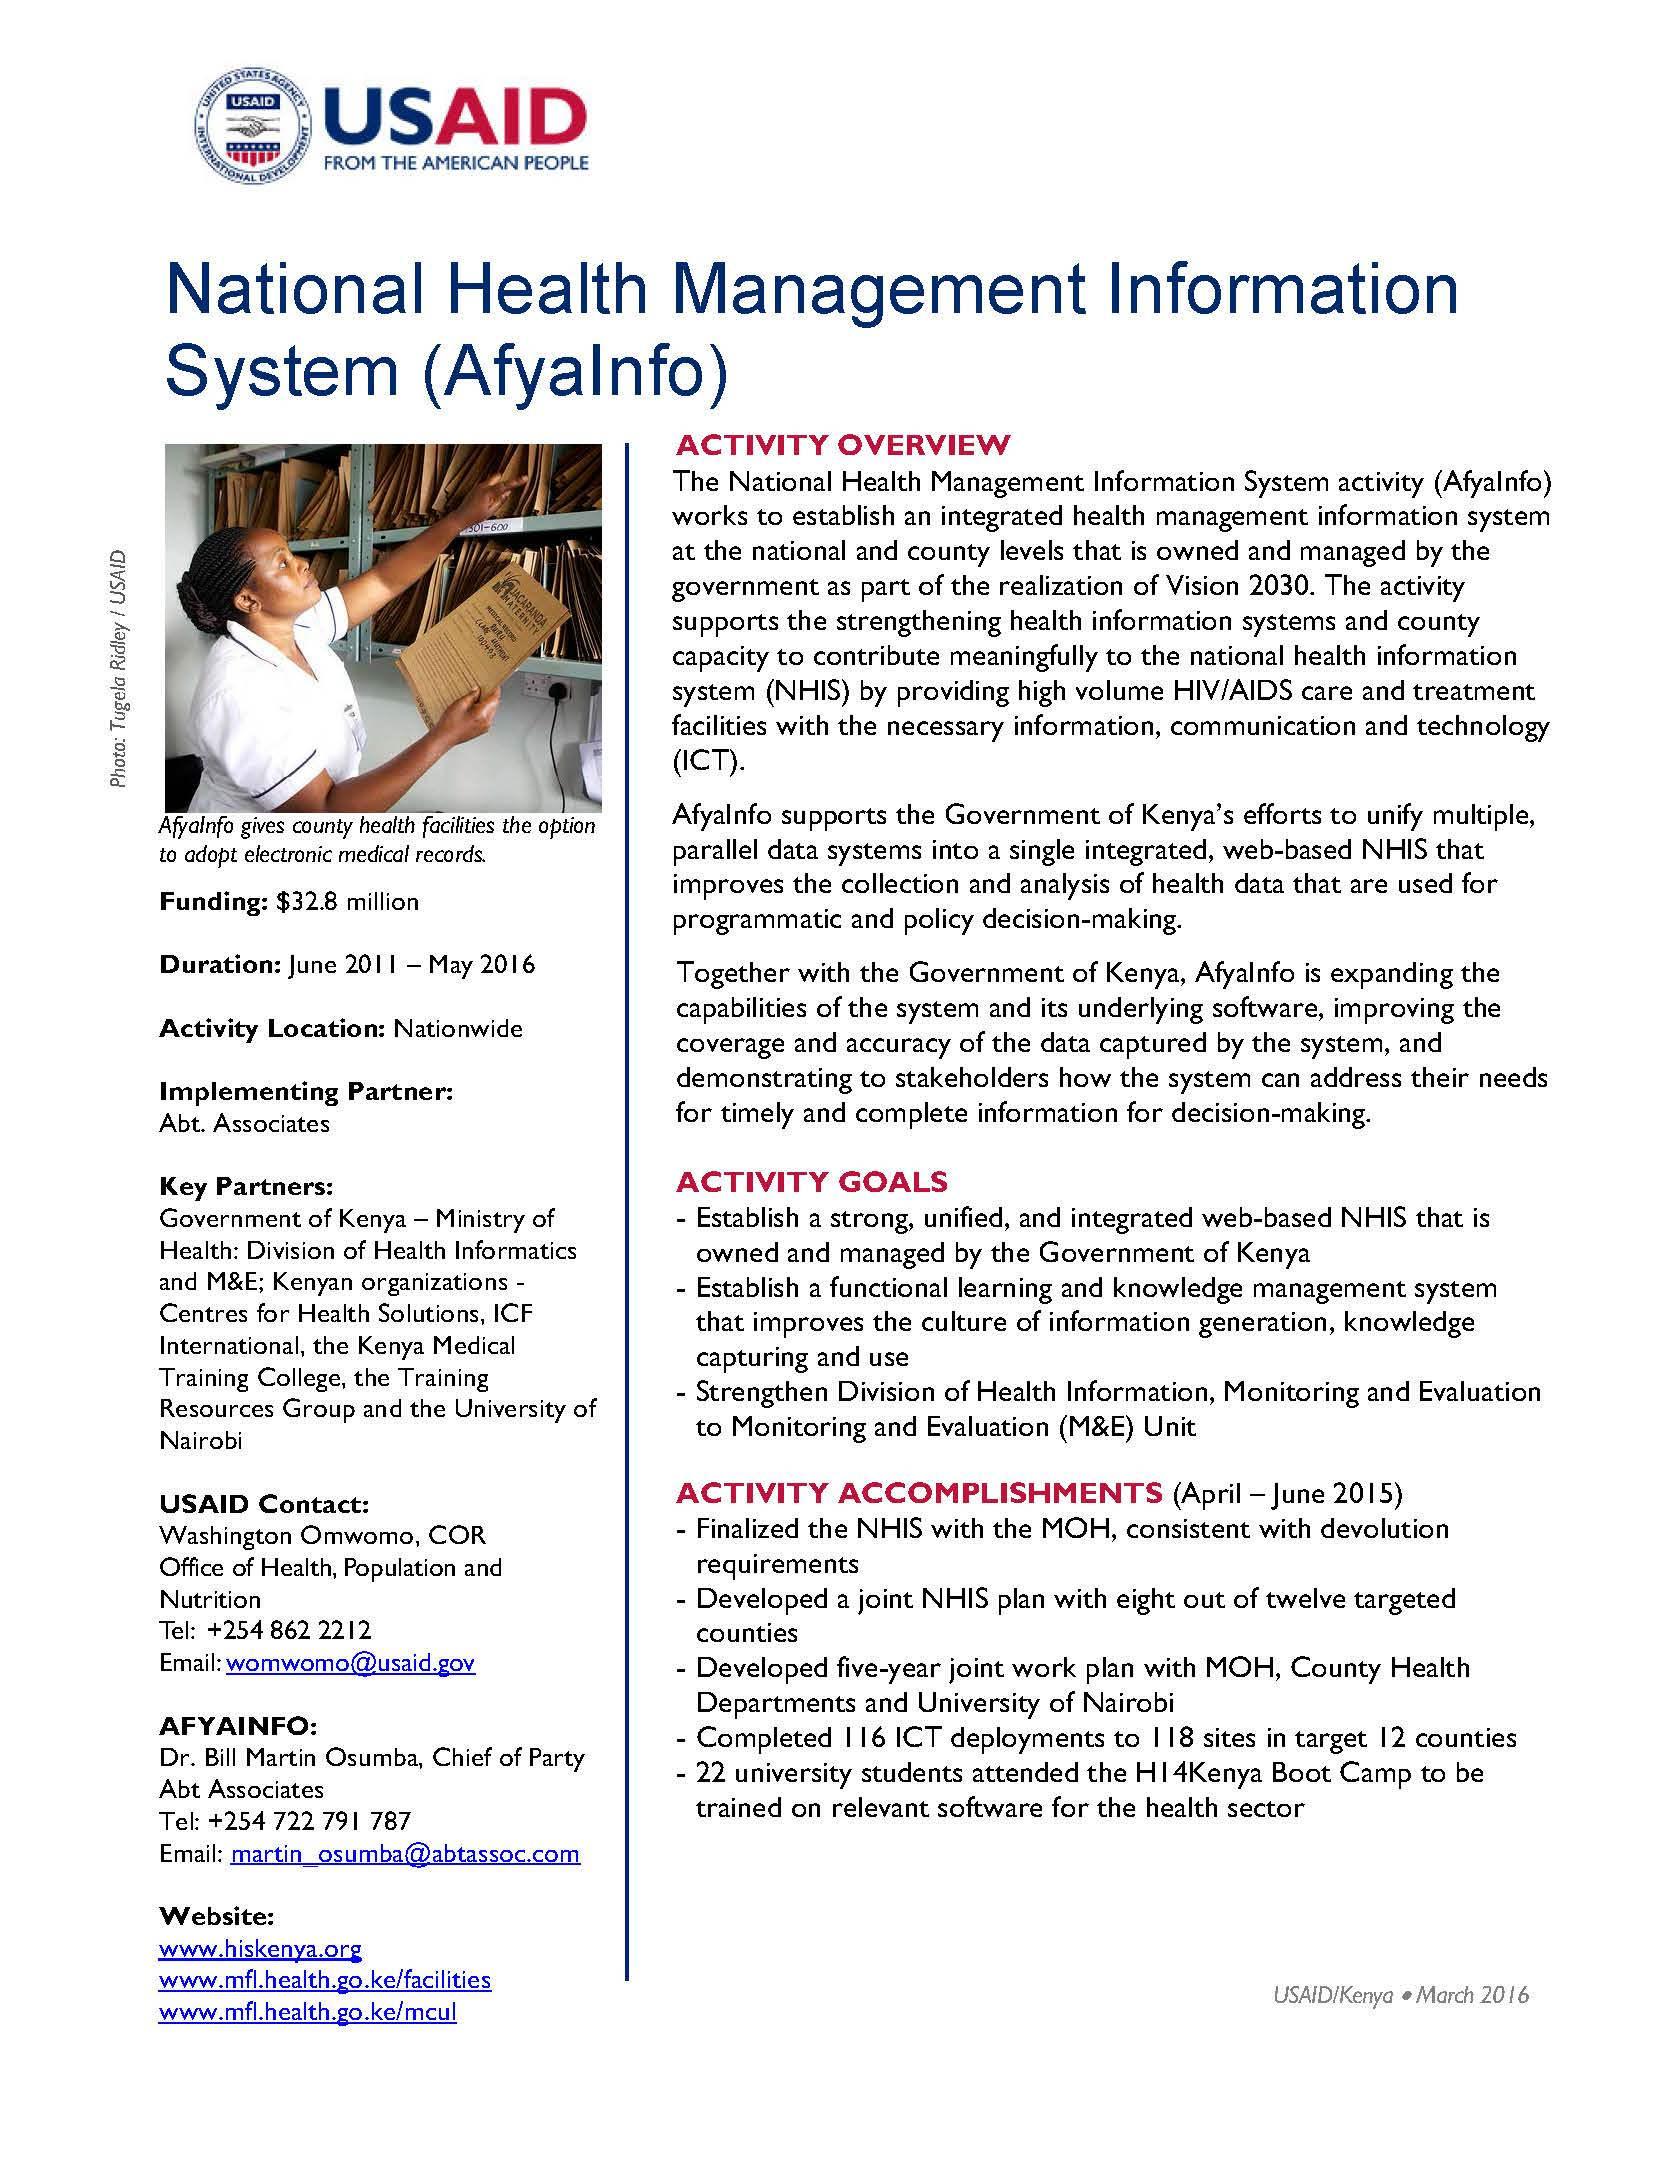 National Health Management Information System (AfyaInfo)